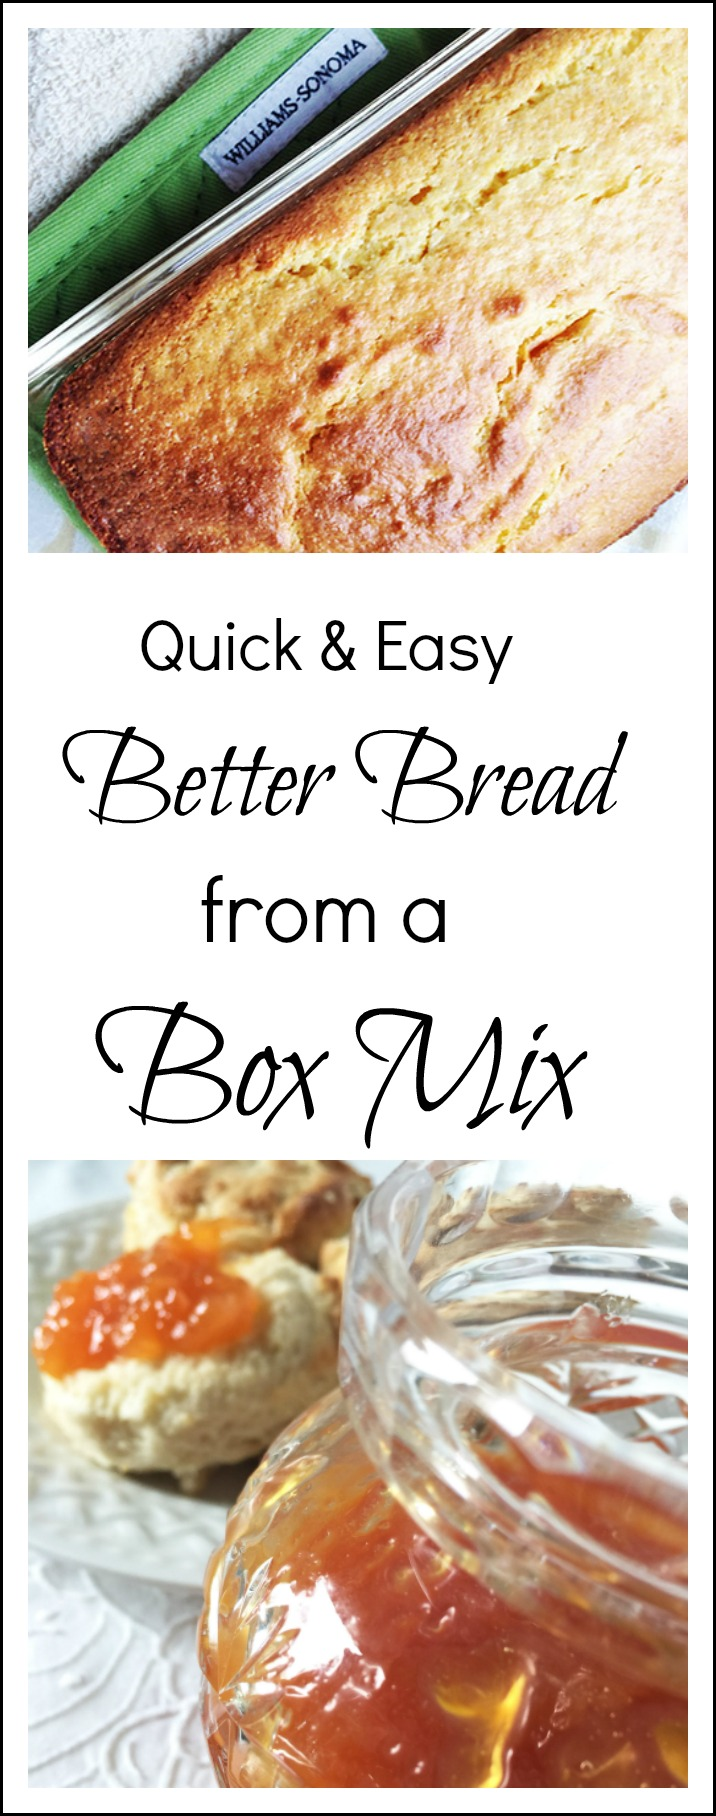 It's easy to make better bread from a box mix with a few tricks. Find out how to juggle the box mix, fluid, mixing time and bake time.